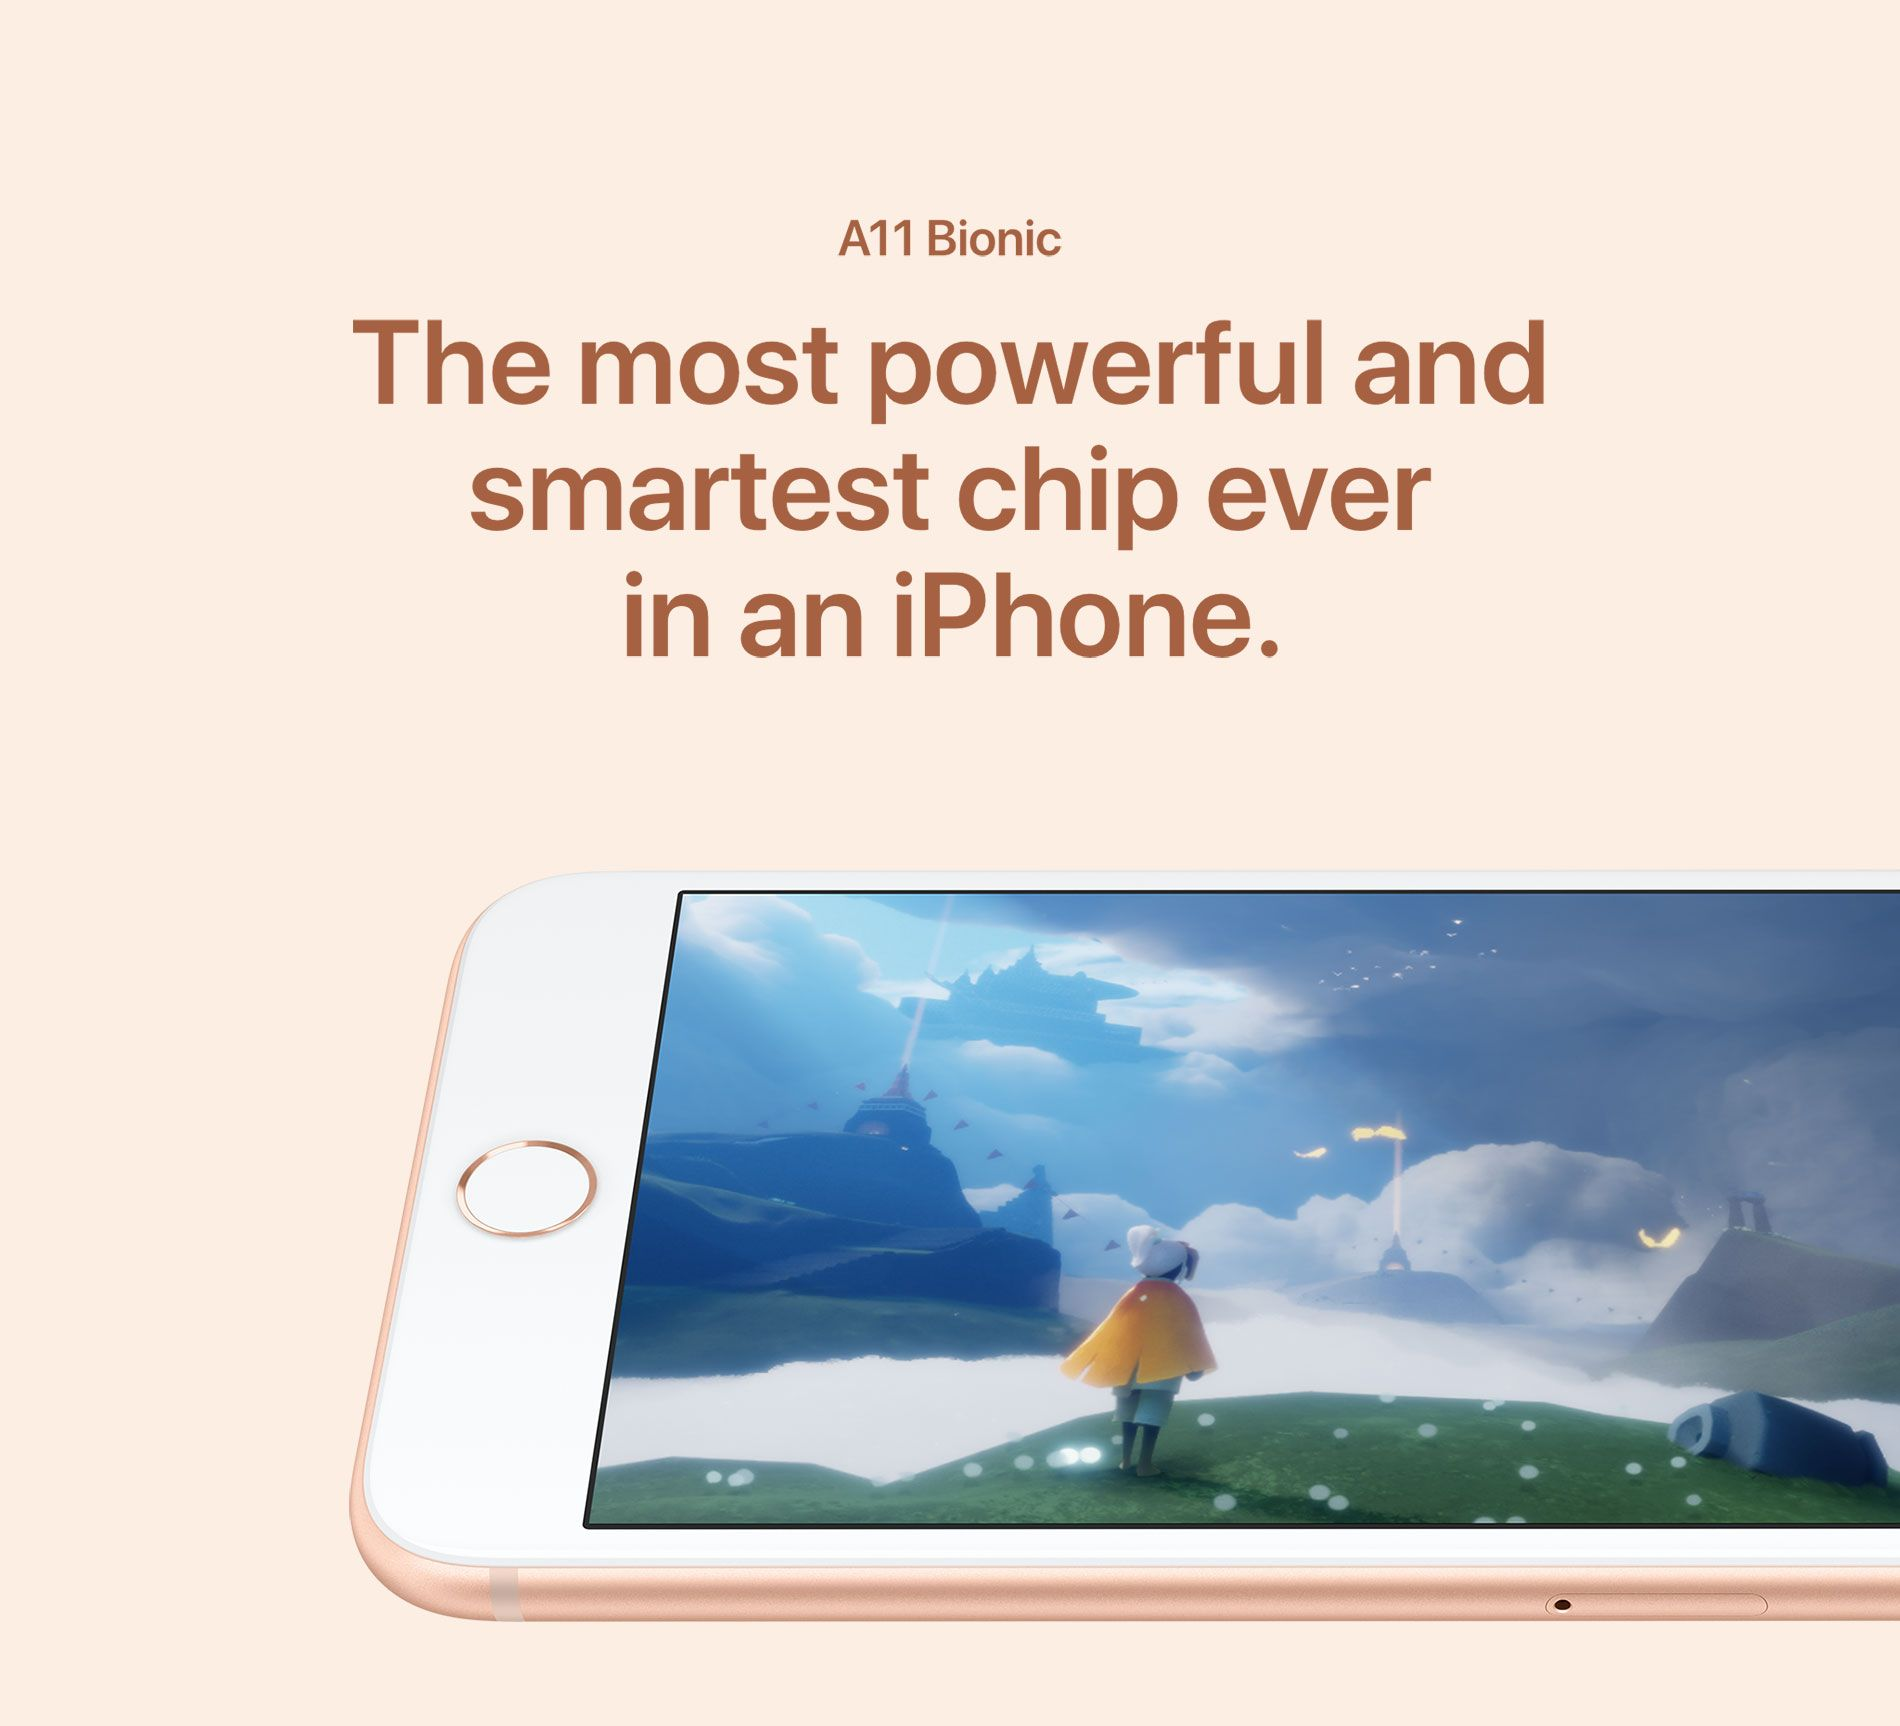 A11 Bionic - The most powerful and smartest chip ever in an iPhone.